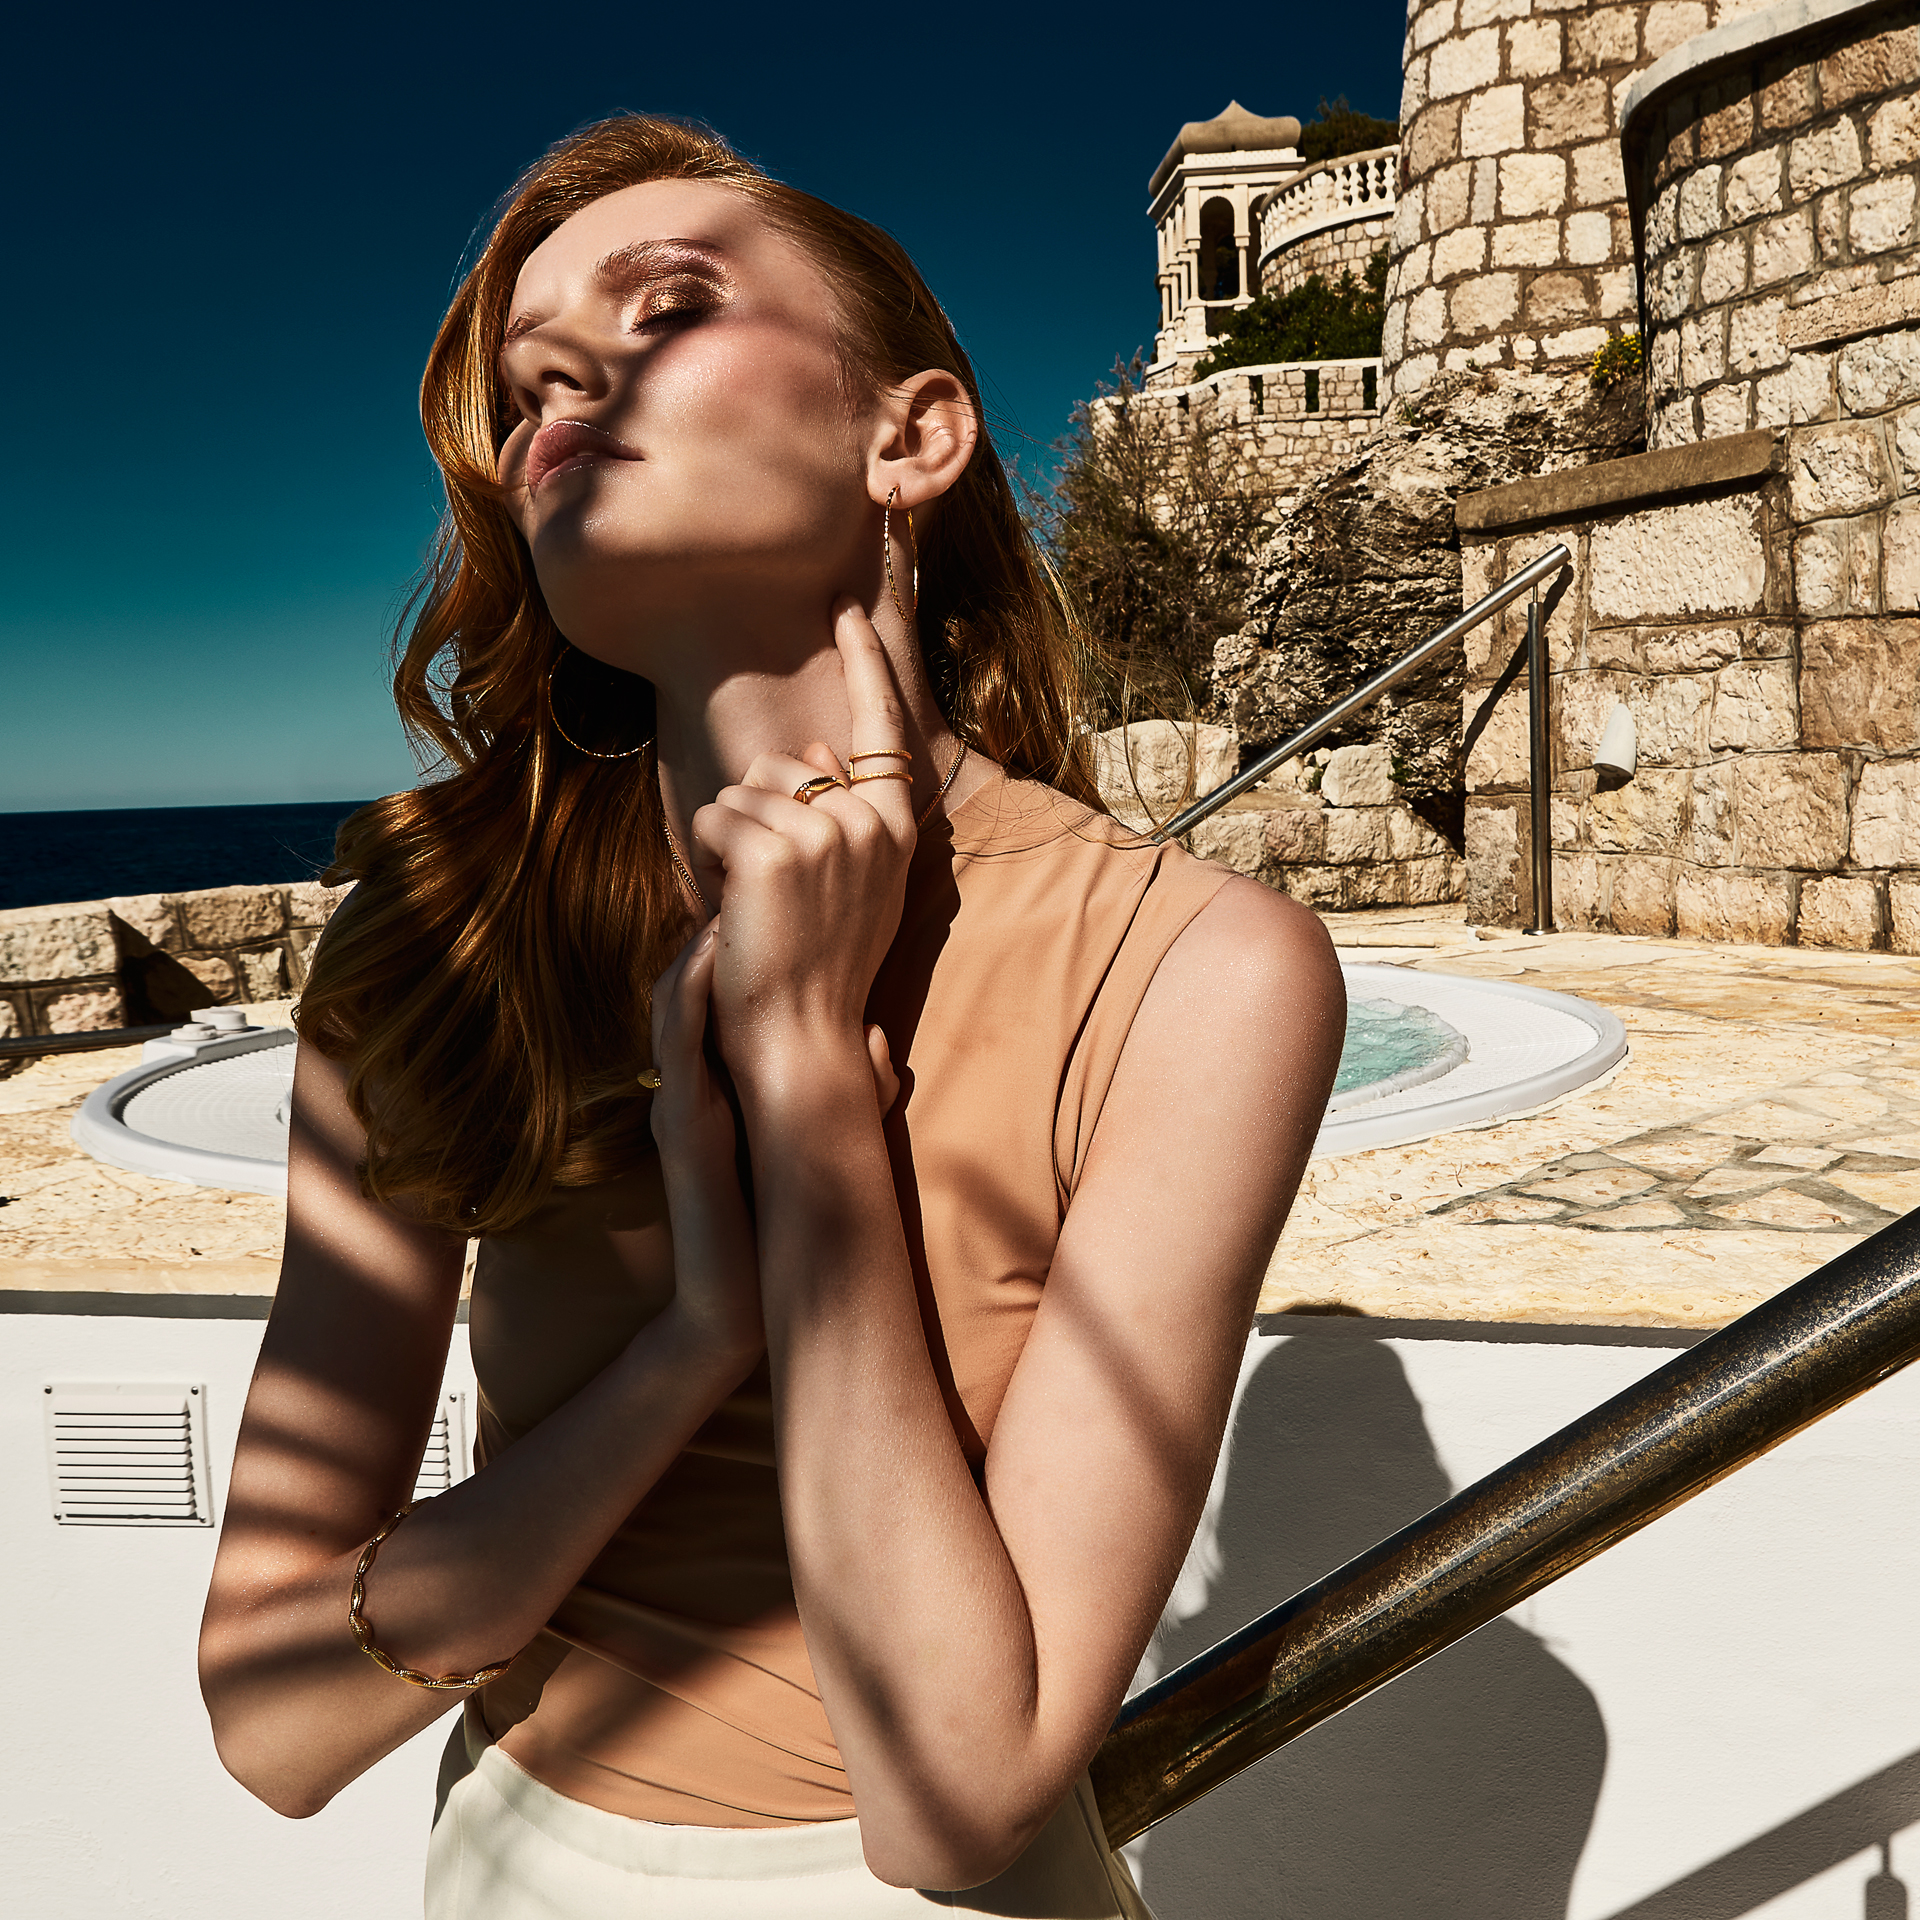 Fashion photography by David Hatters in Dubrovnik